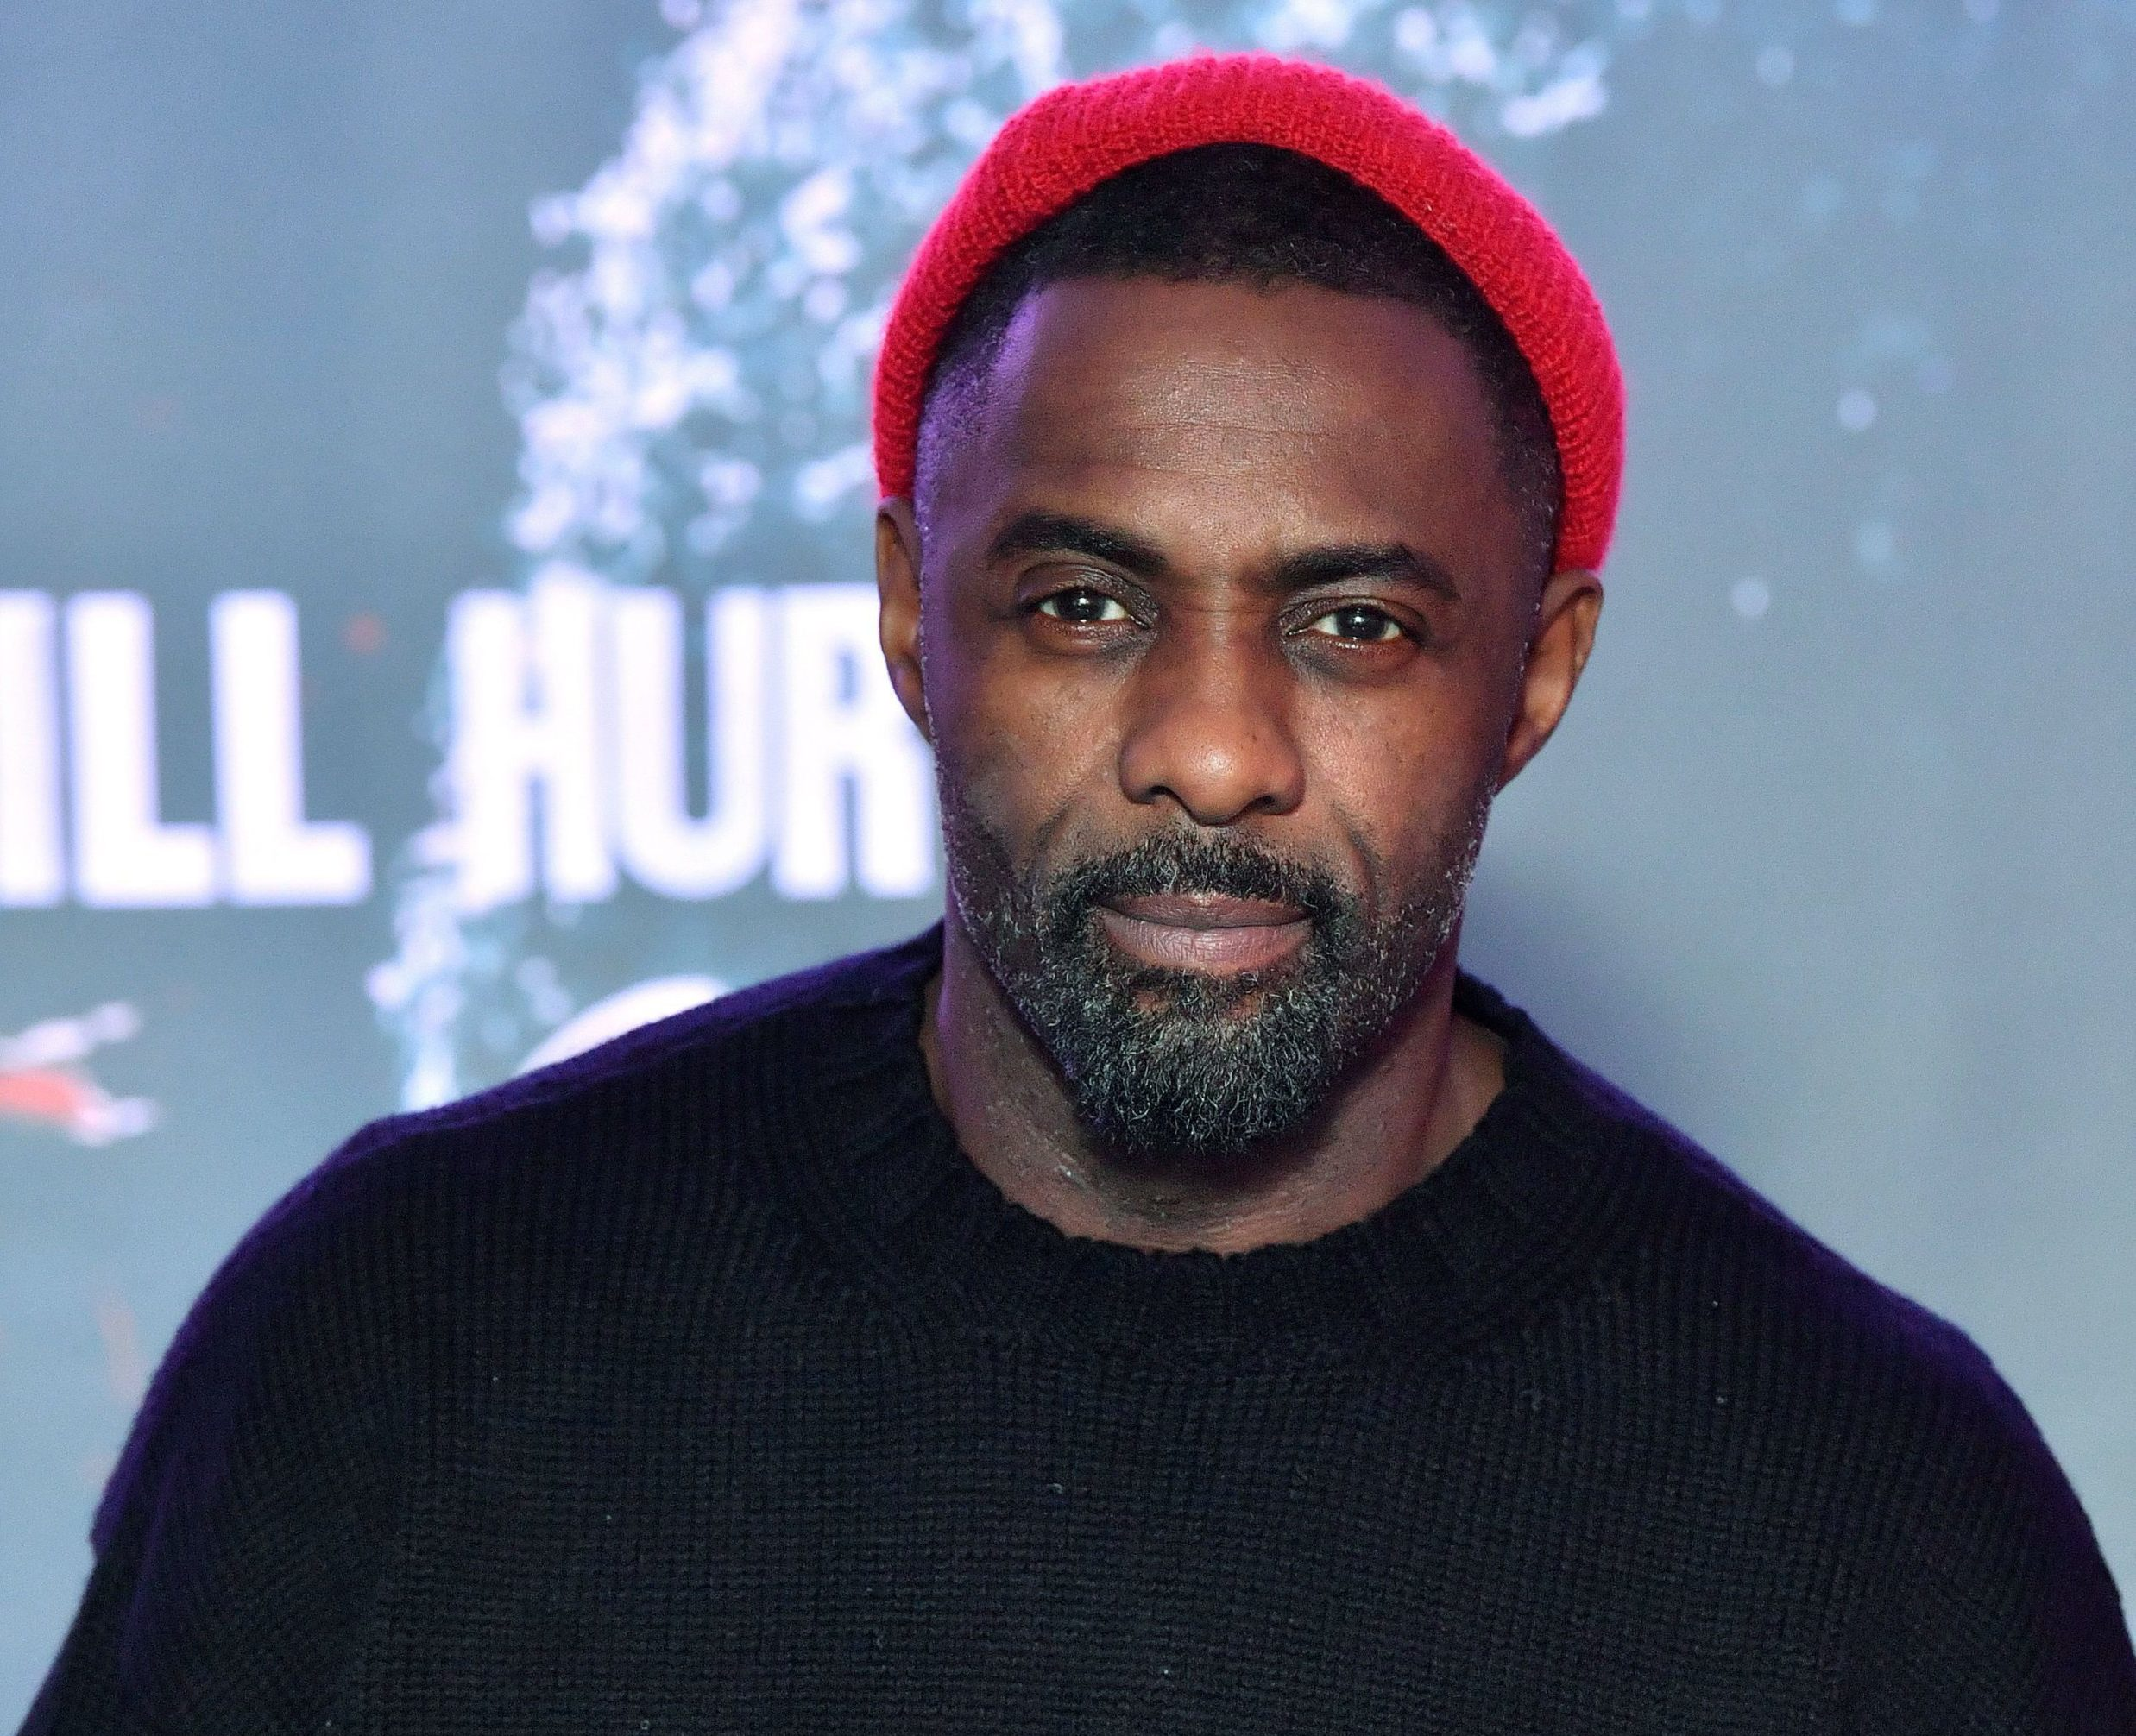 Idris Elba in talks to join Mouse Guard cast with Andy Serkis